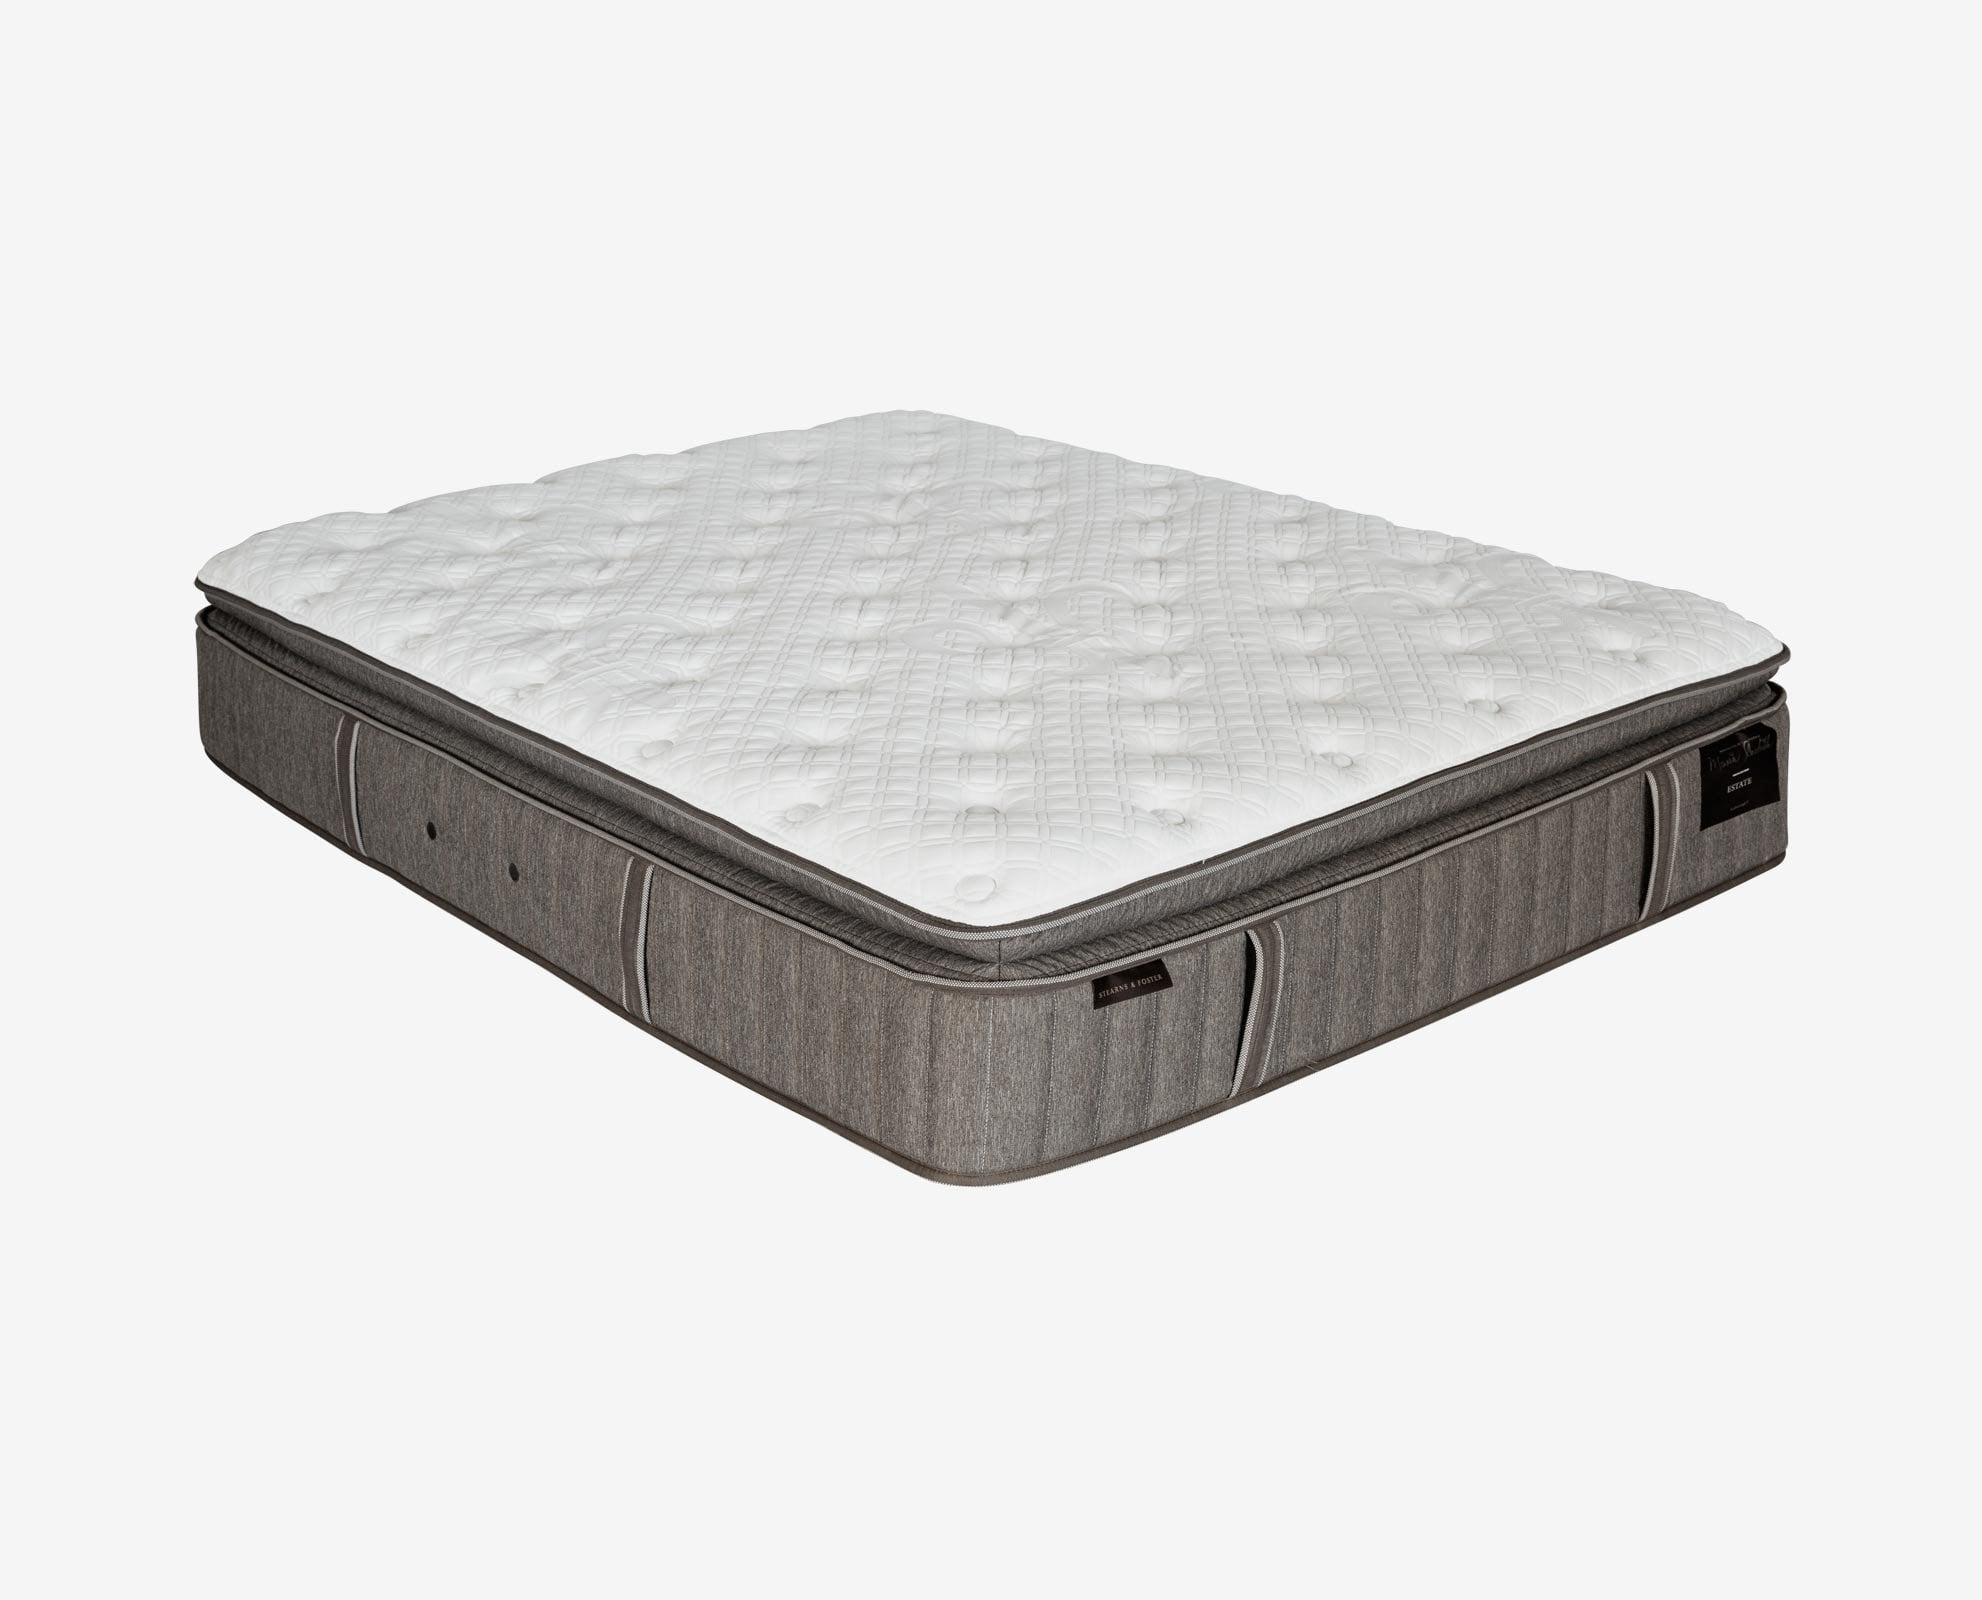 Stearns + Foster™ Scarborough Estate Luxury Plush Euro Pillow Mattress - Scandinavian Designs